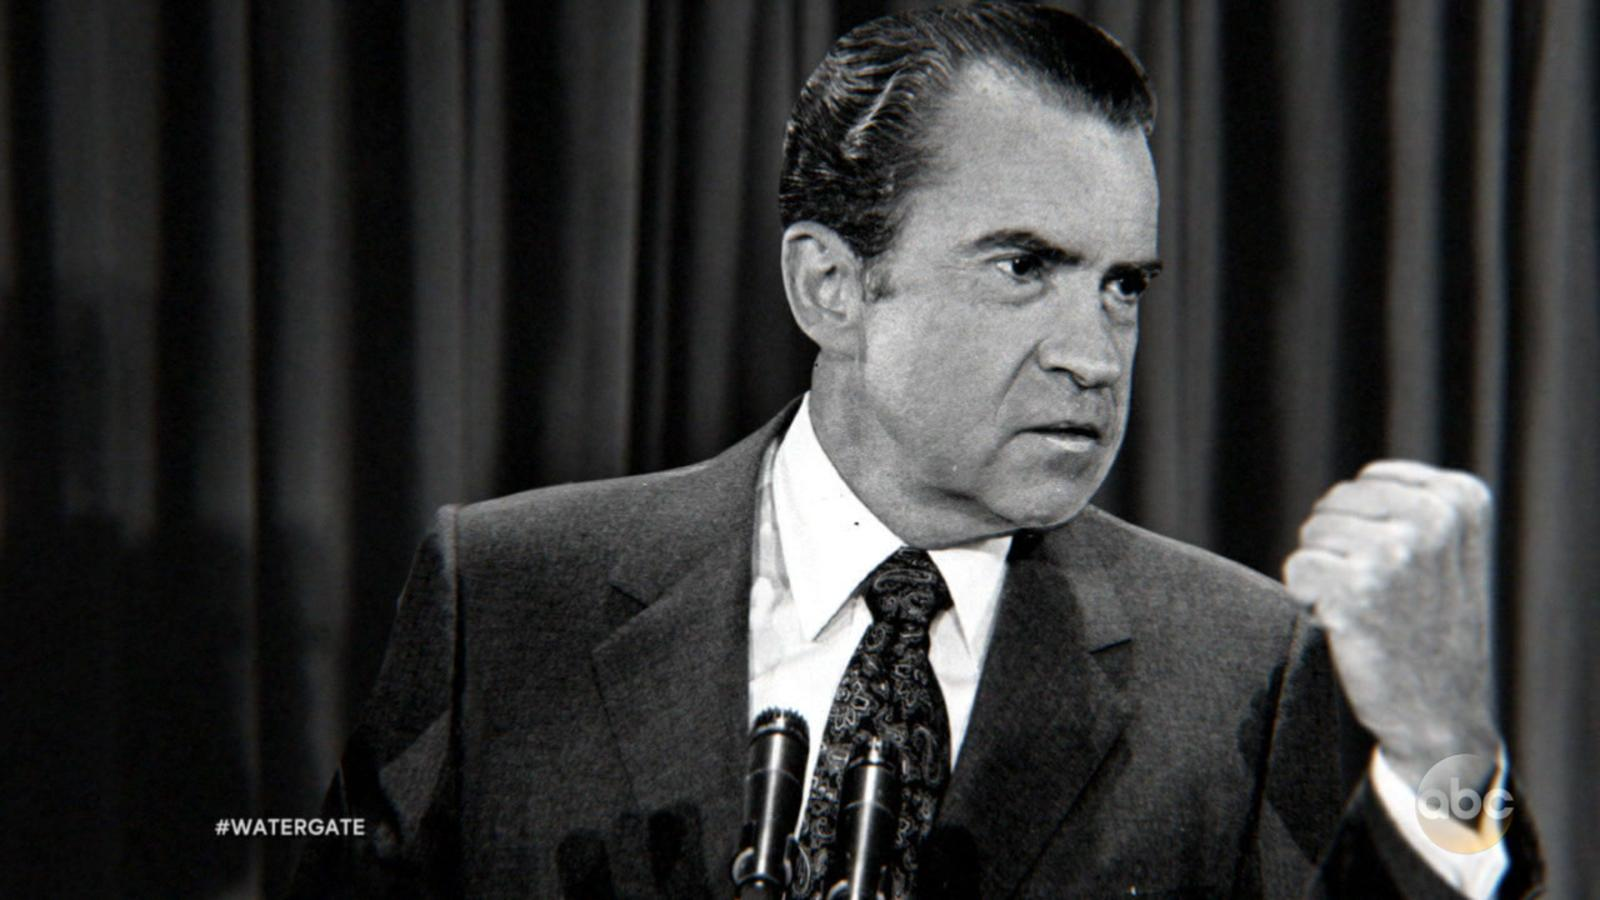 a history of richard nixons presidency Richard milhous nixon was the 37th president of the united states of america who was famous as the first us president to resign from office because of his impeachment proceedings the watergate scandal.